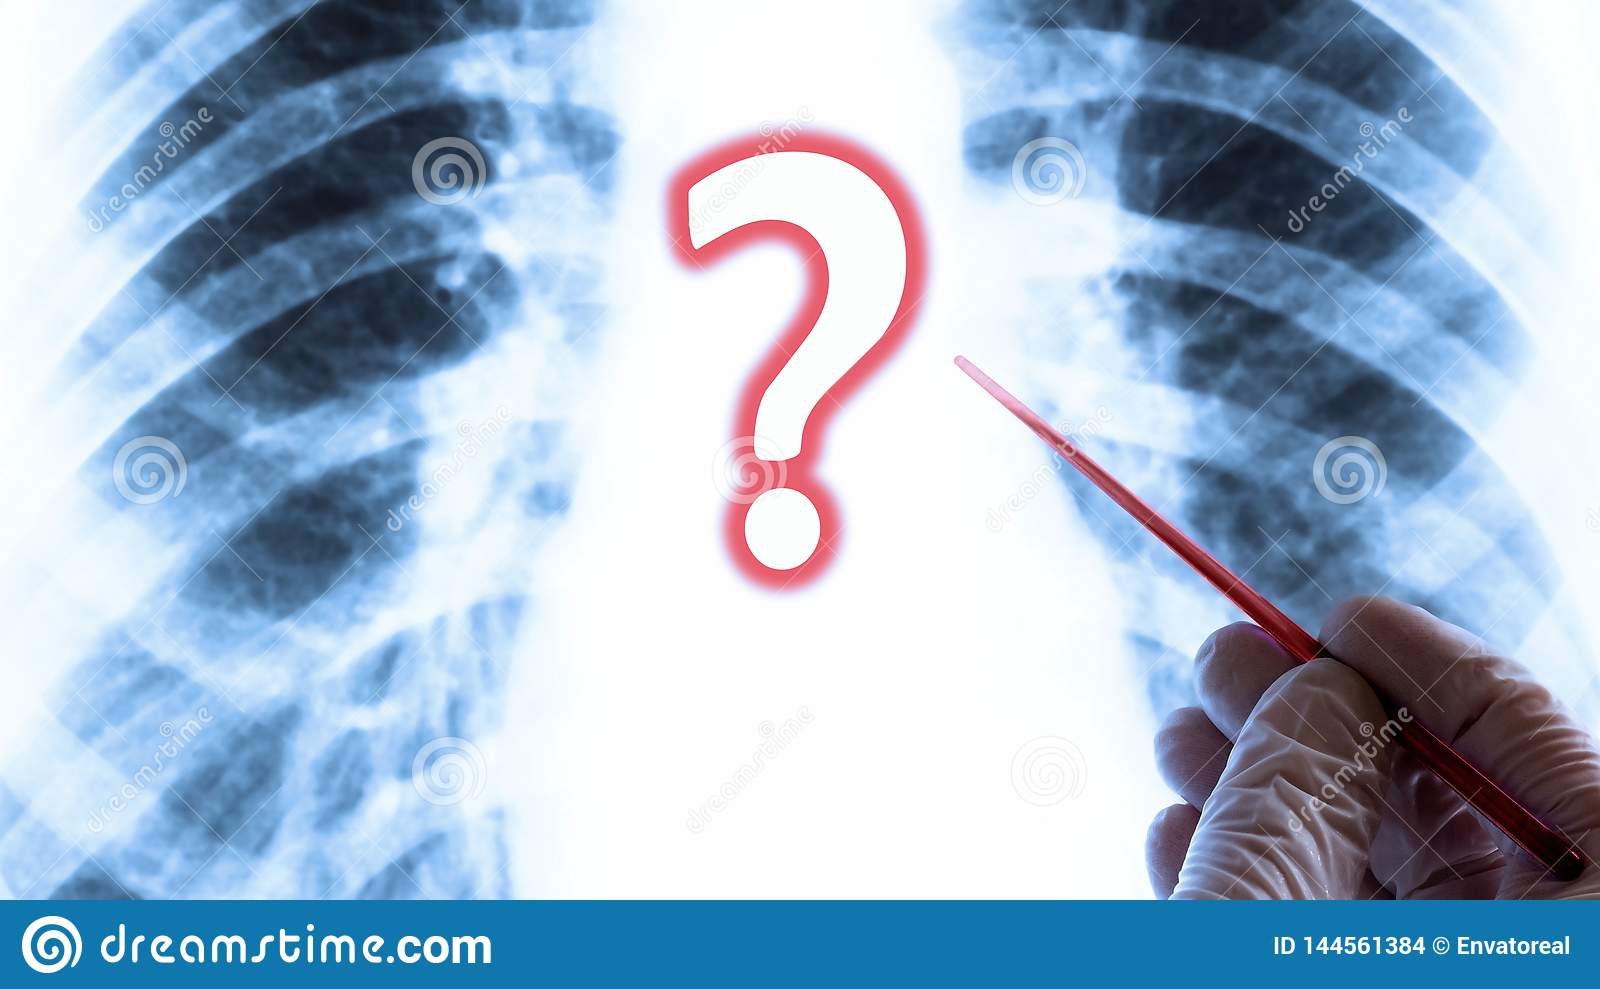 The question of health or lung disease. Medical concept. Hand in glove with a red pointer on the background of chest X-ray.